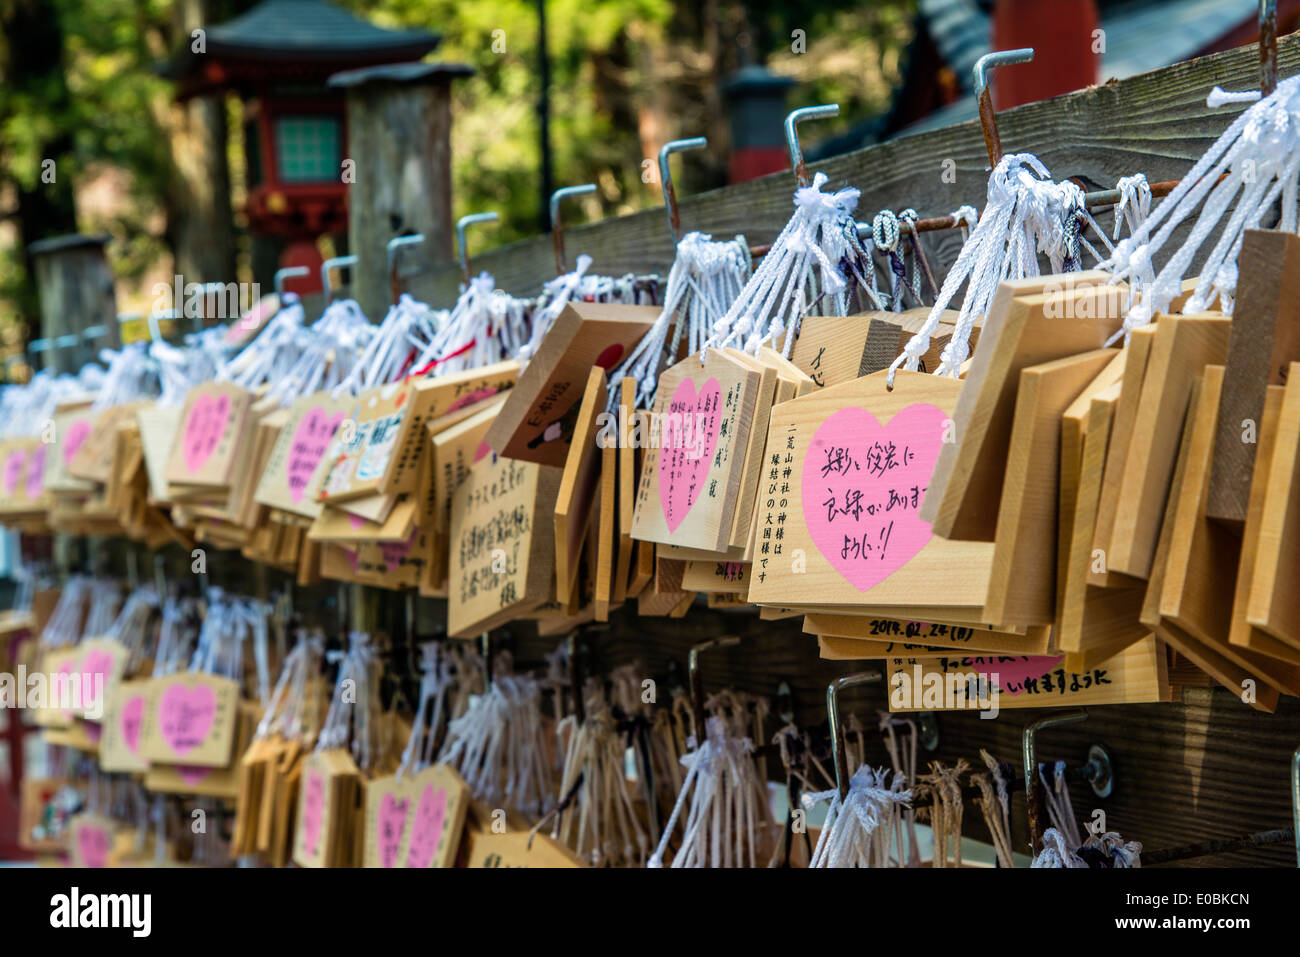 Ema prayer sor wishes wooden plaques hanging from a rack, Taiyuin-byo Temple, Nikko, Tochigi Prefecture, Japan - Stock Image